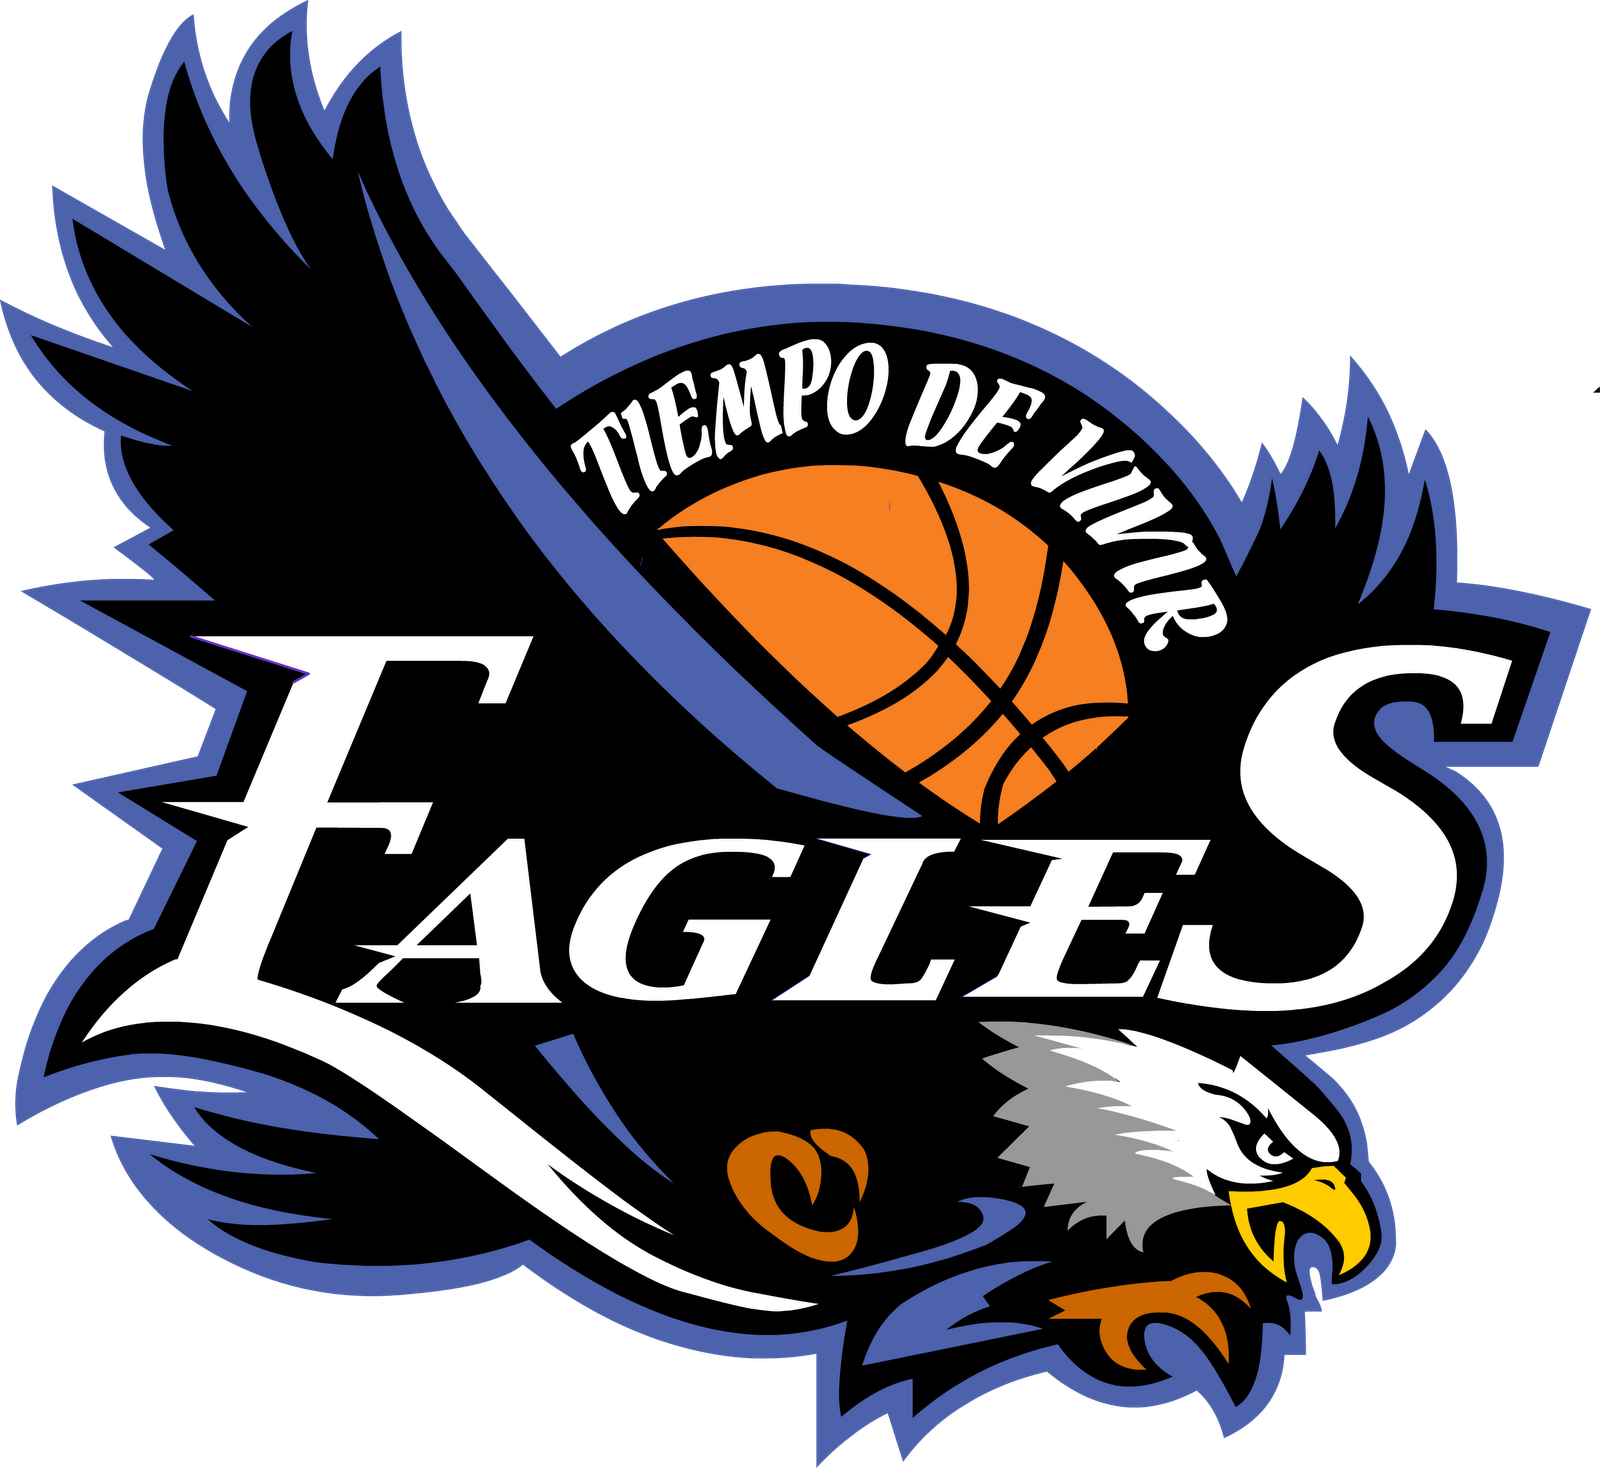 Eagles Basketball Team Logo Clipart | Eagles | Pinterest ...